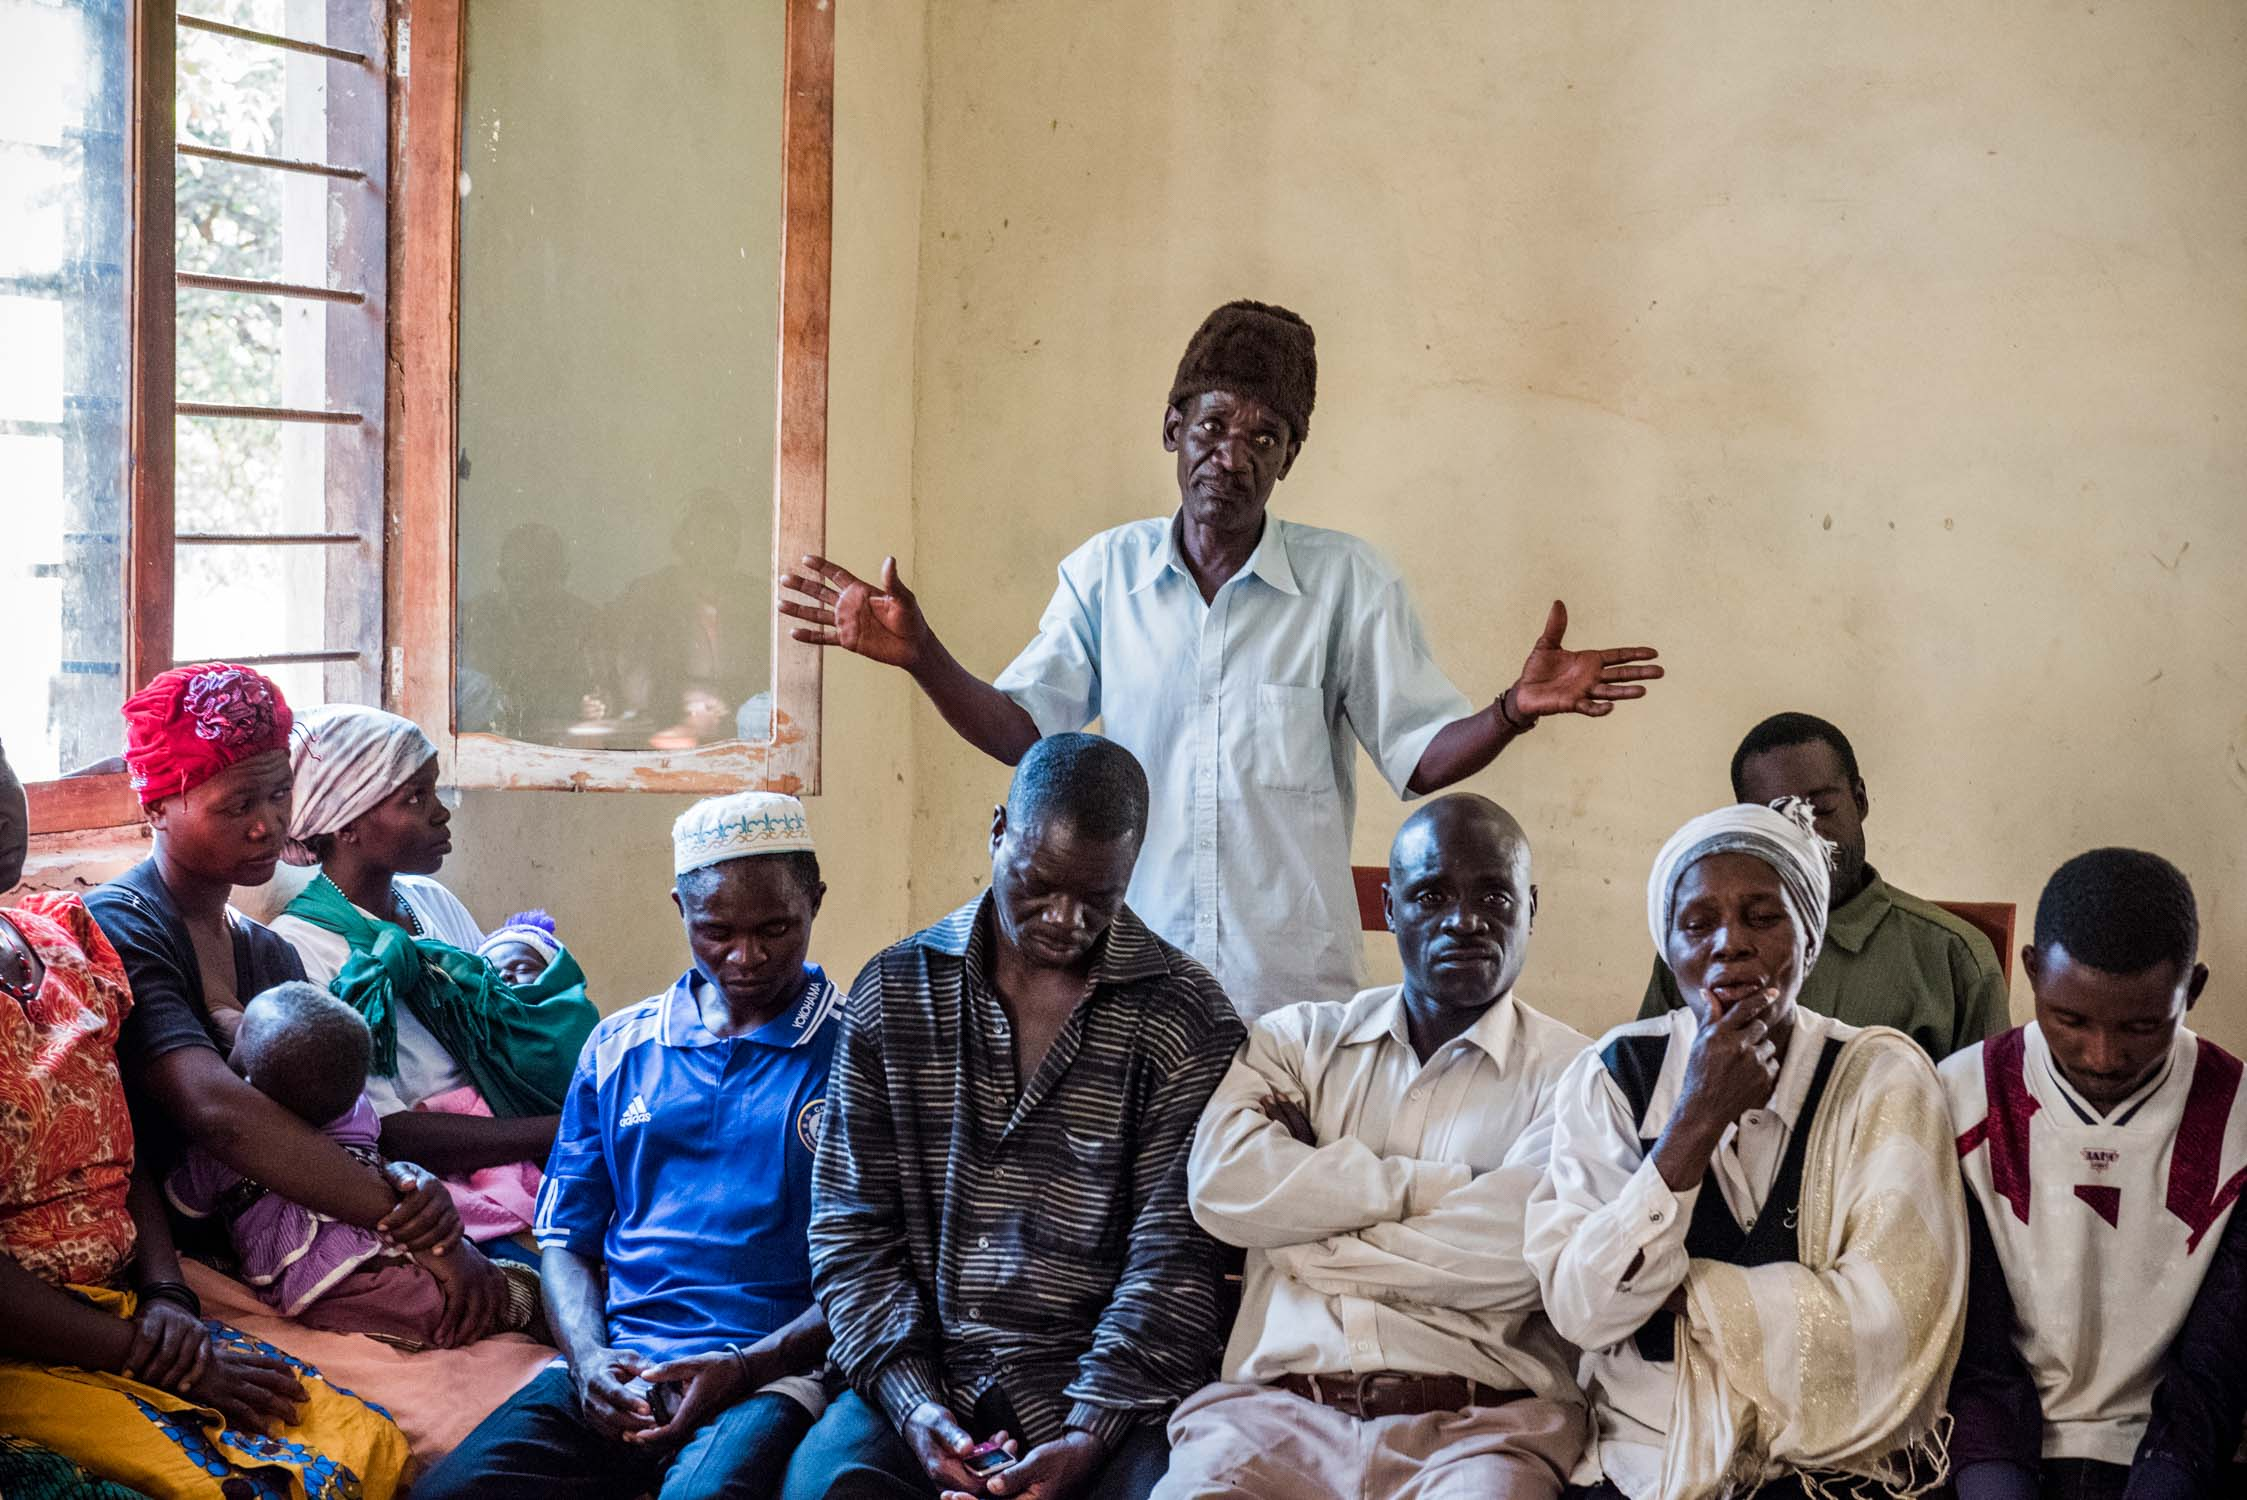 People of Likuyu Village gather with Village Game Scouts and environmentalists, discussing the problems of human-wildlife conflicts in that area.